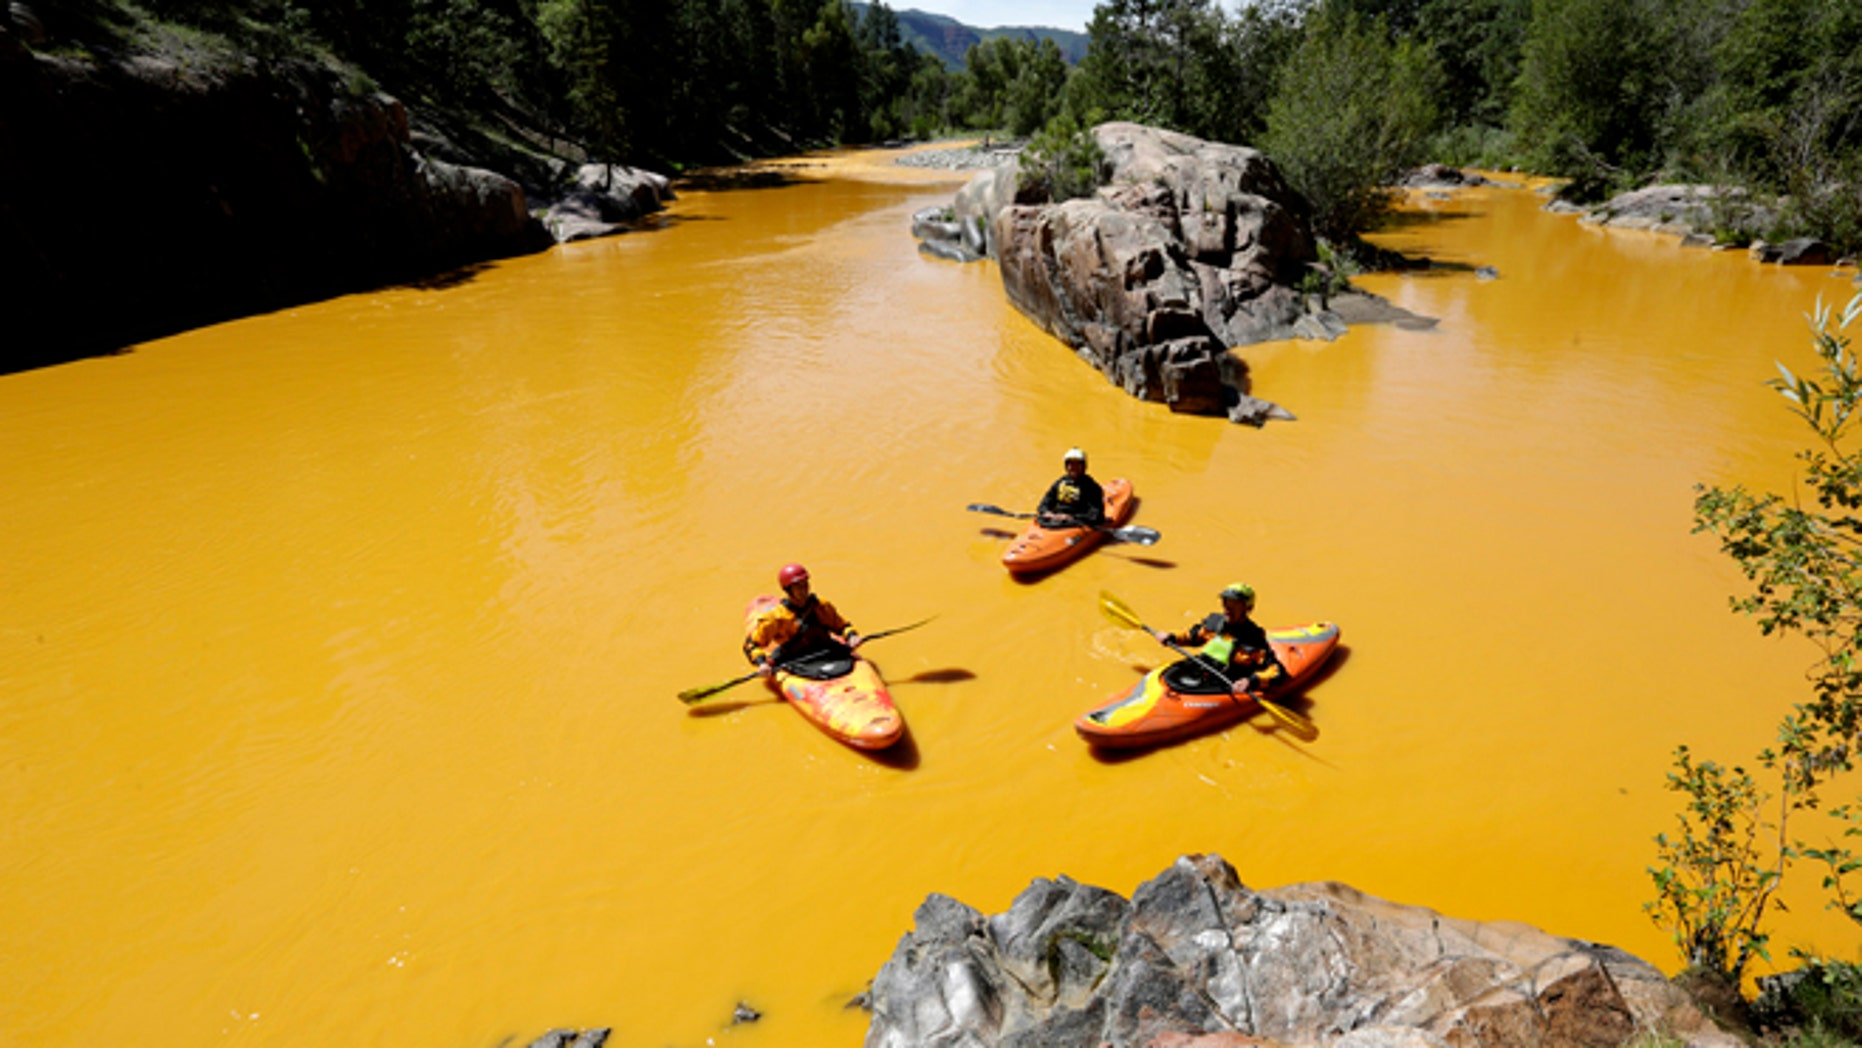 In this Thursday, Aug. 6, 2015 file photo, people kayak in the Animas River near Durango, Colo., in water colored yellow from a mine waste spill. A crew supervised by the U.S. Environmental Protection Agency has been blamed for causing the spill while attempting to clean up the area near the abandoned Gold King Mine. Tribal officials with the Navajo Nation declared an emergency on Monday, Aug. 10, as the massive plume of contaminated wastewater flowed down the San Juan River toward Lake Powell in Utah, which supplies much of the water to the Southwest. (Jerry McBride/The Durango Herald via AP, FILE)